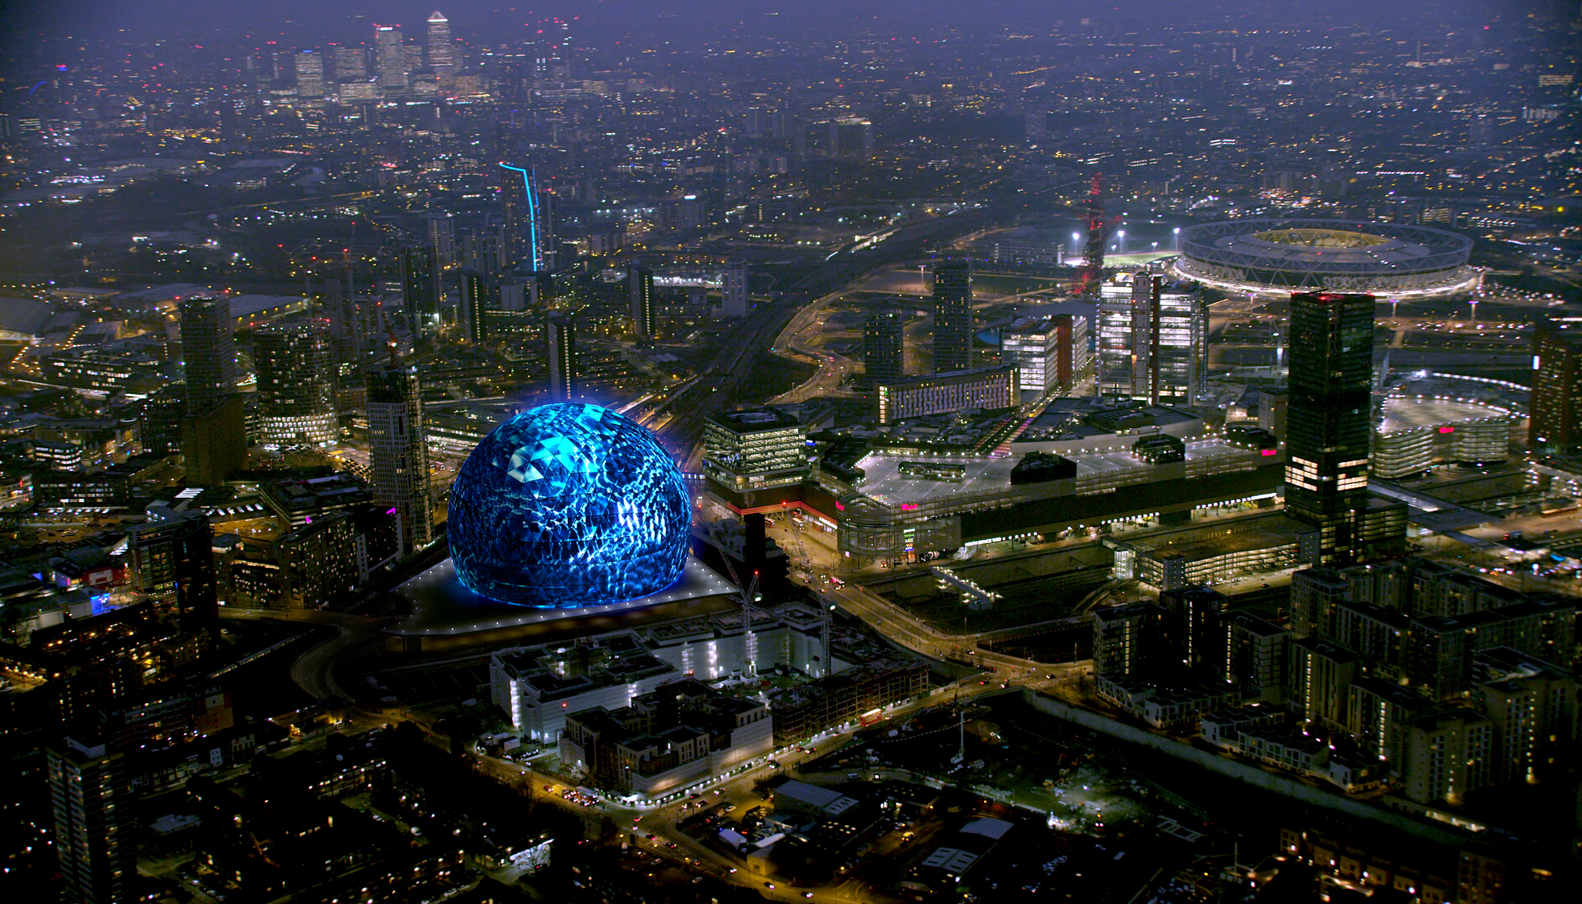 Madison Square Garden Unveils Images Of Spherical Events Venue In  London,Courtesy Of The Madison